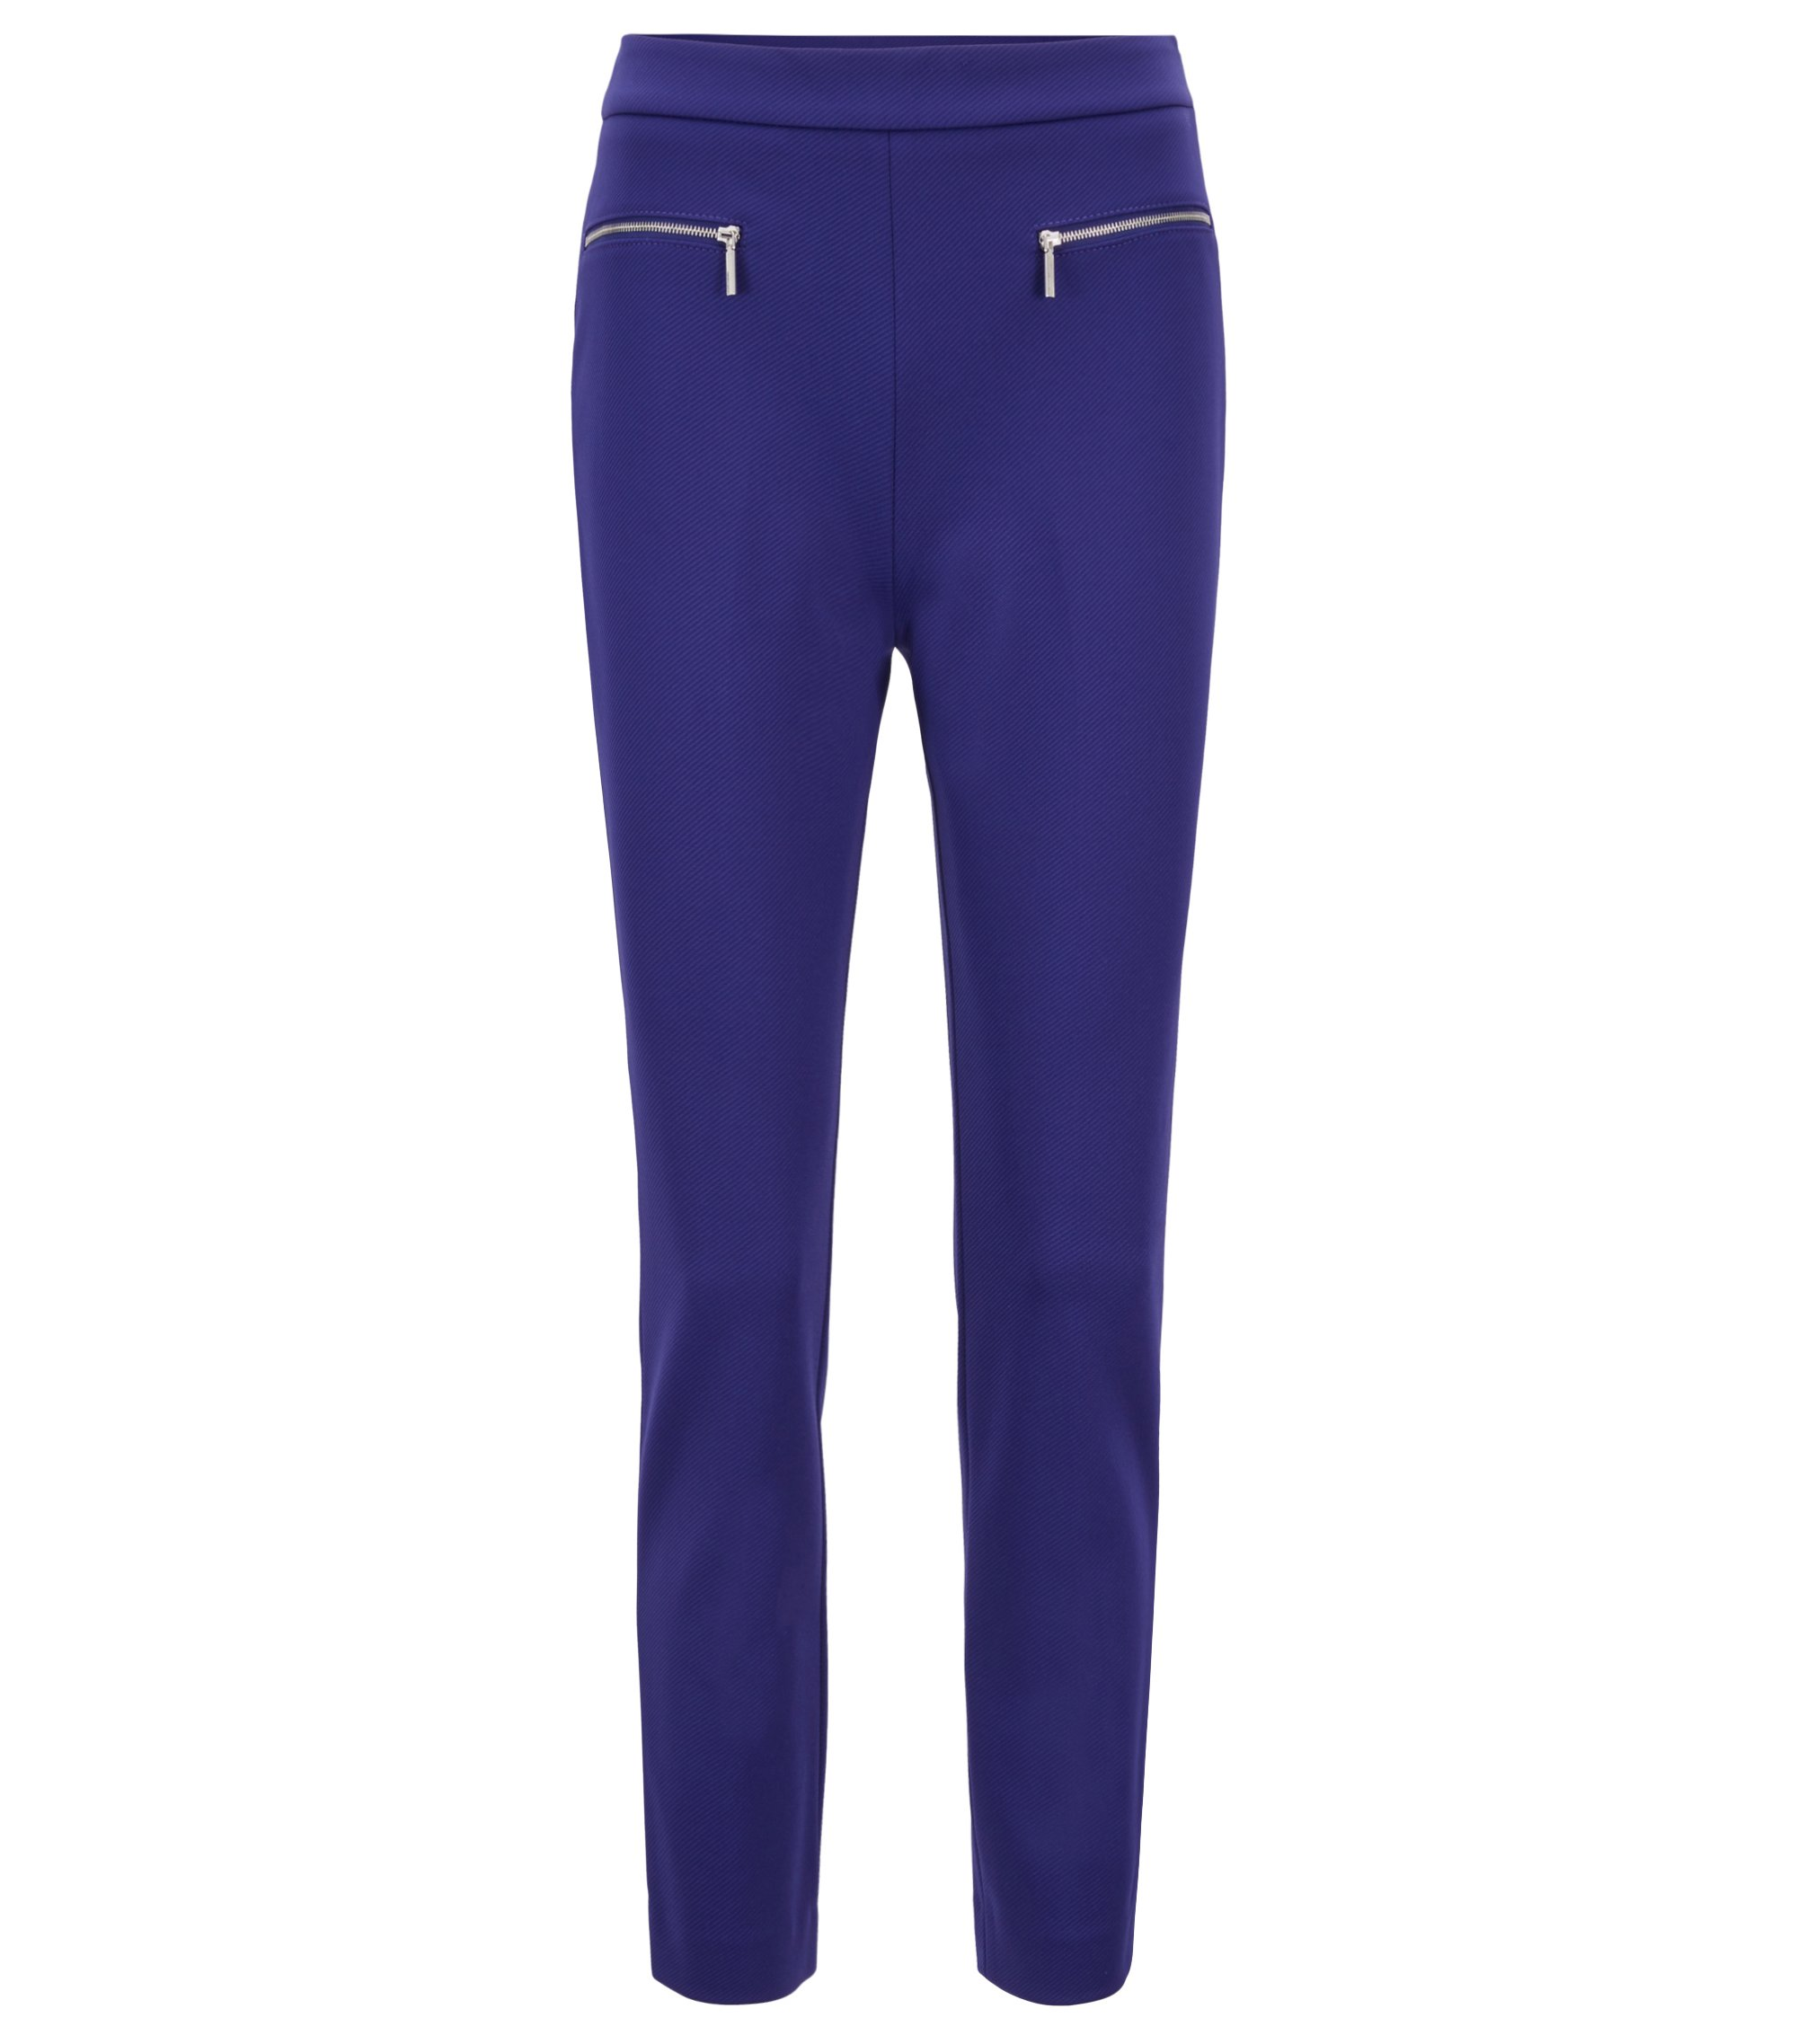 Extra-slim-fit cropped pants in stretch twill, Open Purple